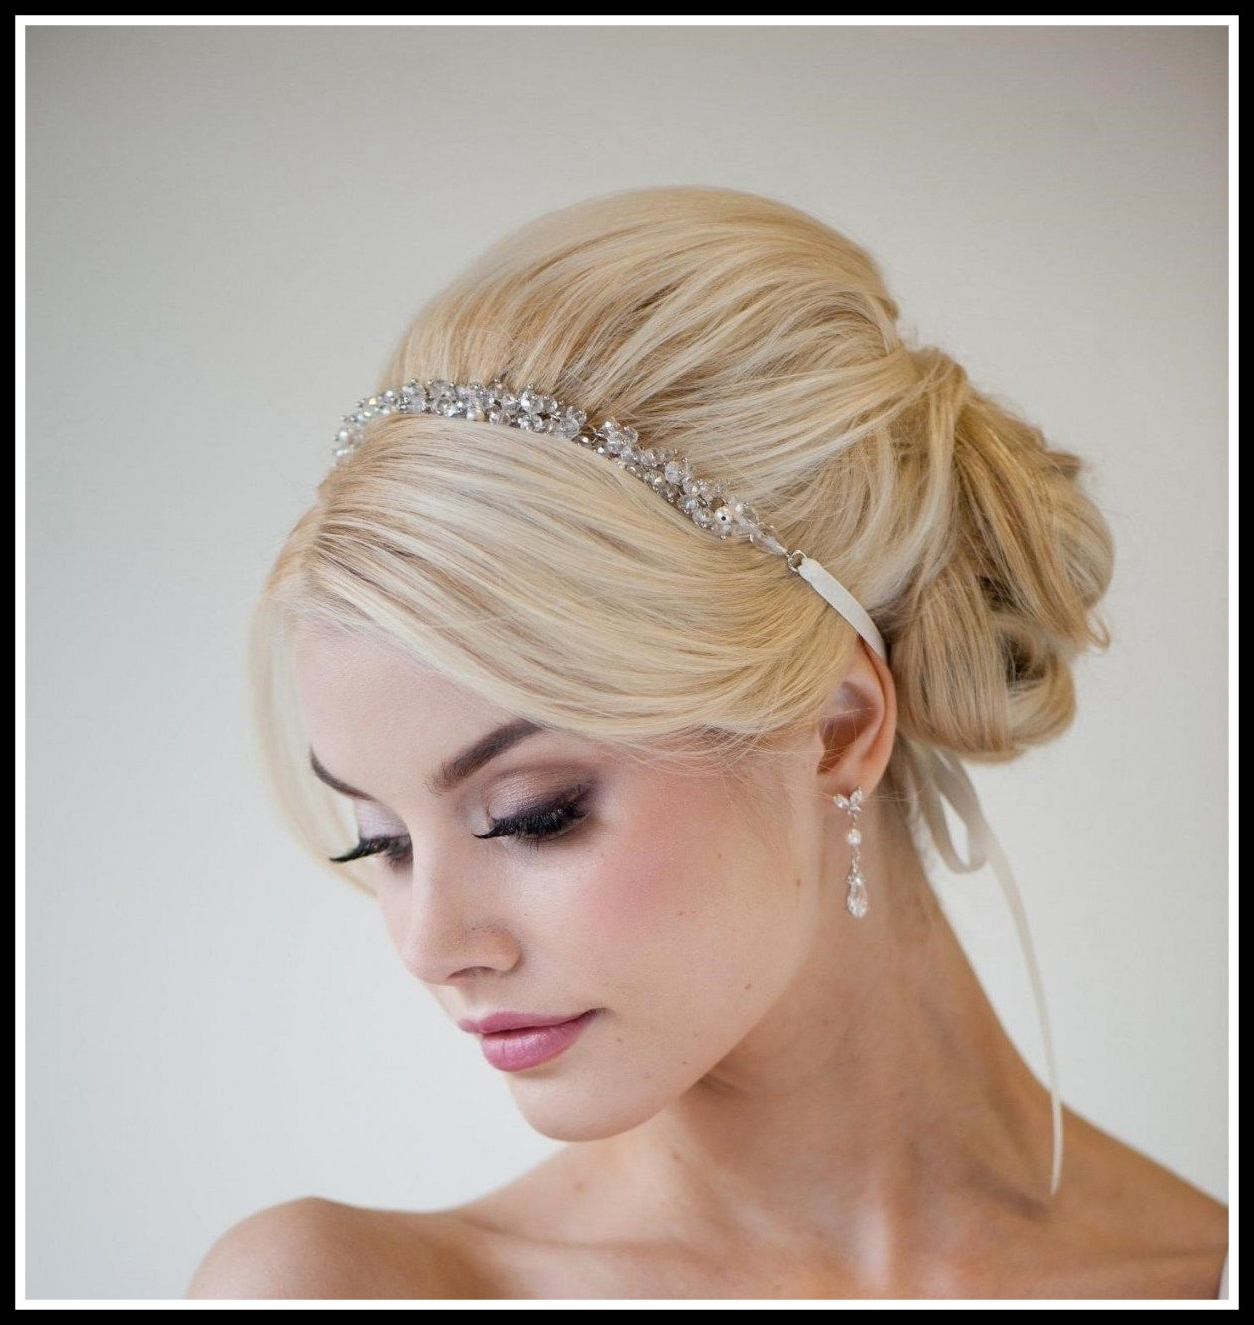 Amazing Medium Length Wedding Hairstyles With Headband Picture For Intended For Recent Wedding Hairstyles For Long Hair With Headband (View 8 of 15)